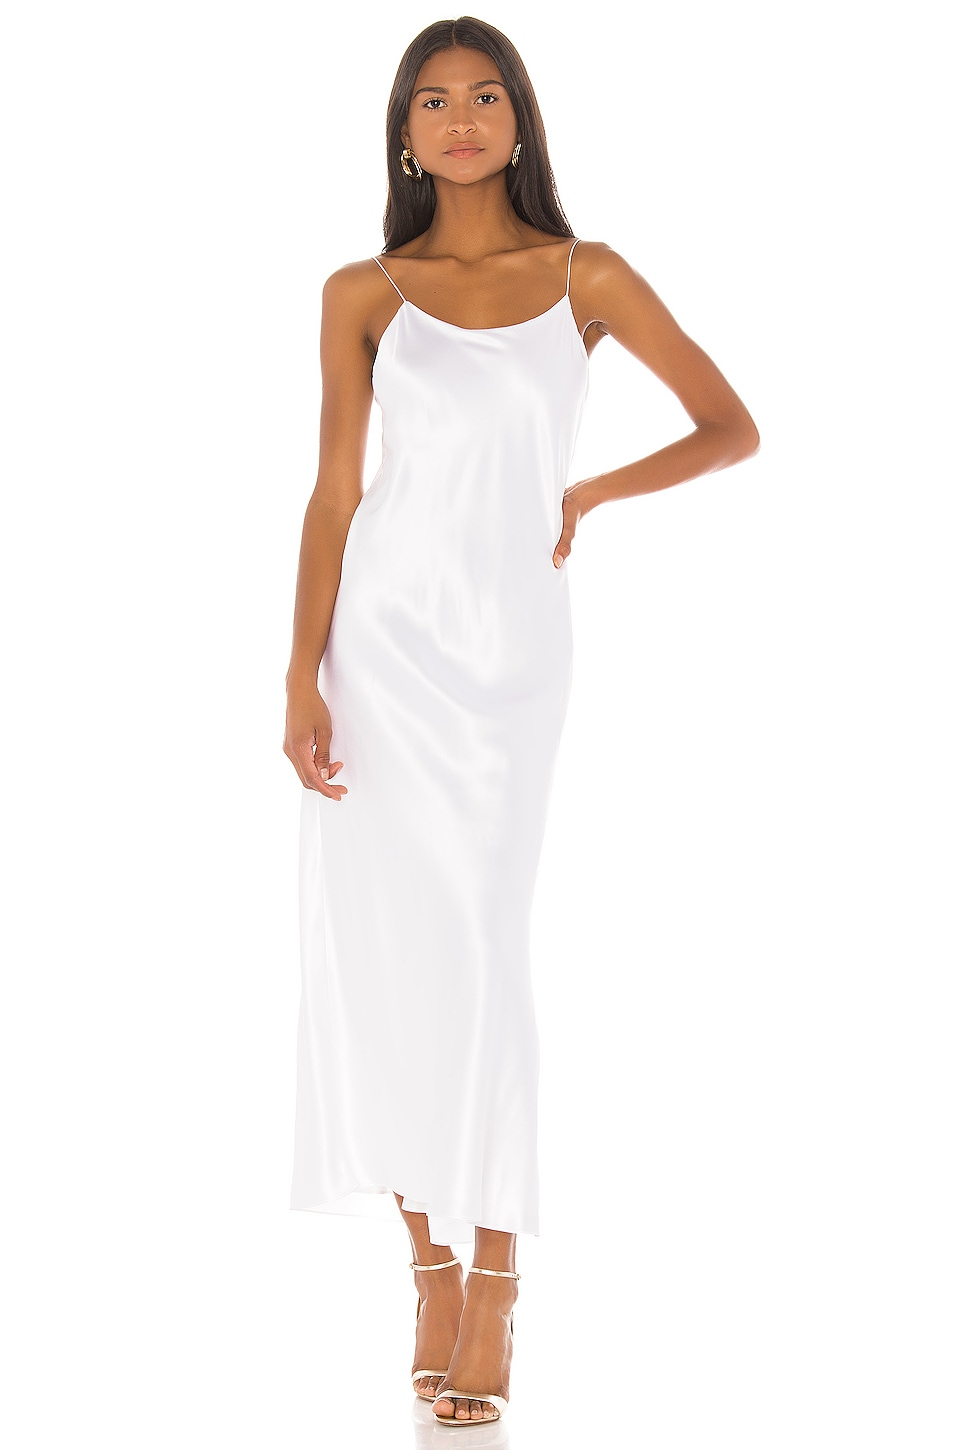 Michael Lo Sordo Bias Cut Camisole Maxi Dress in White